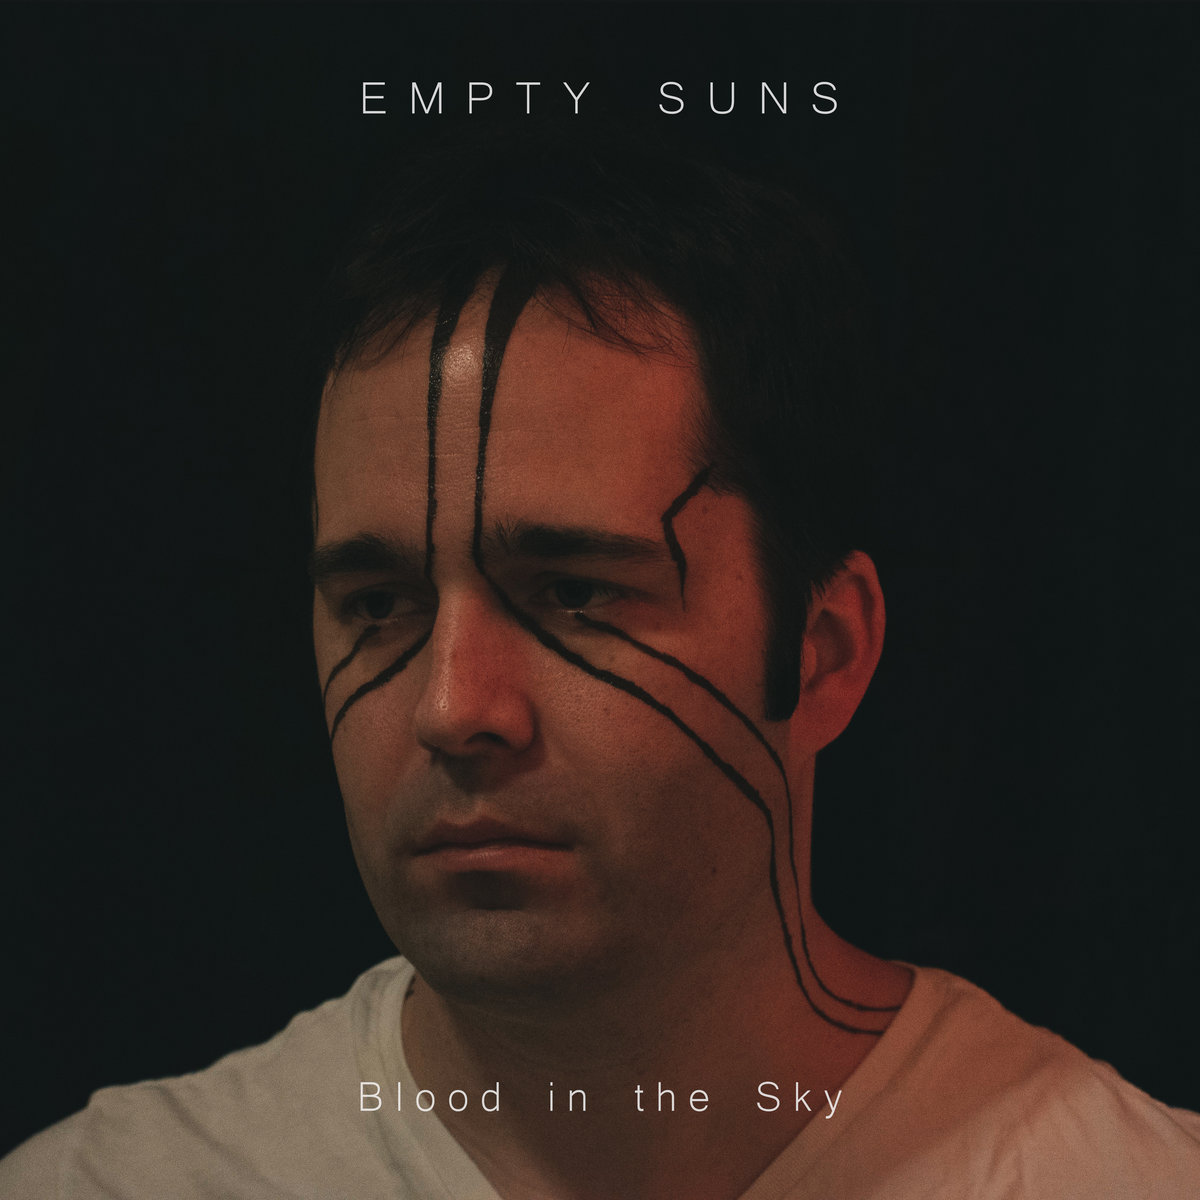 Blood in the Sky by Empty Suns